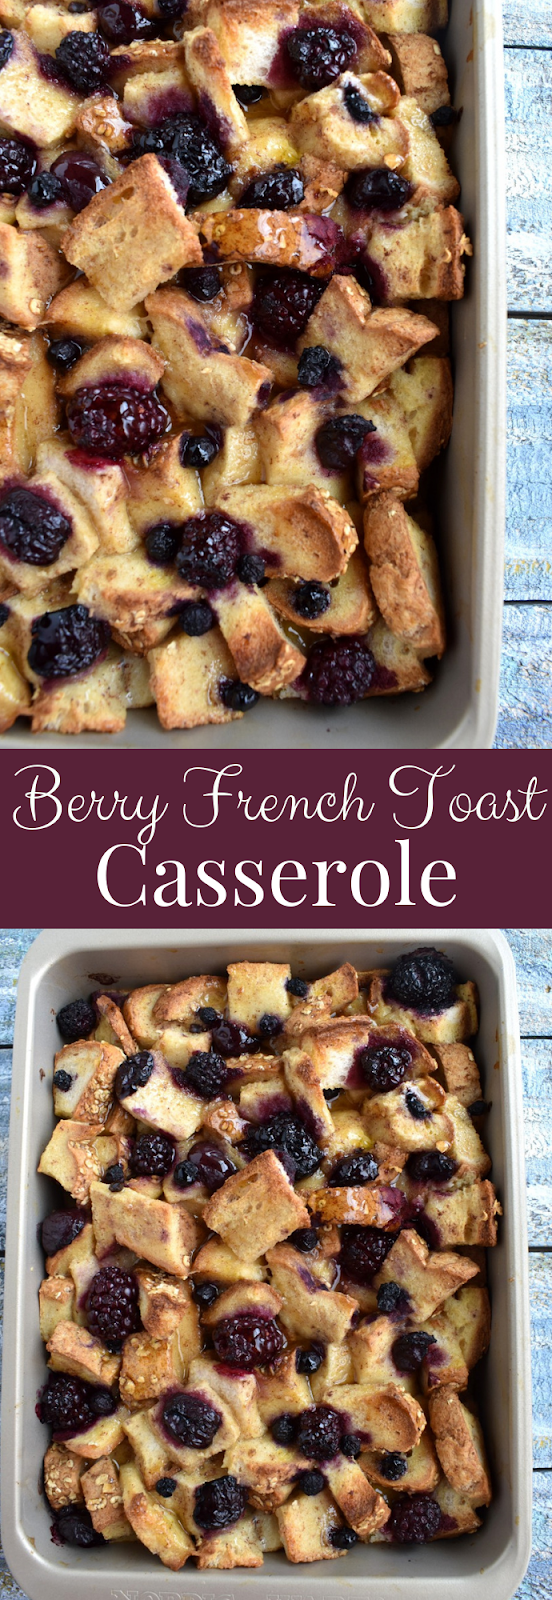 Berry French Toast Casserole recipe